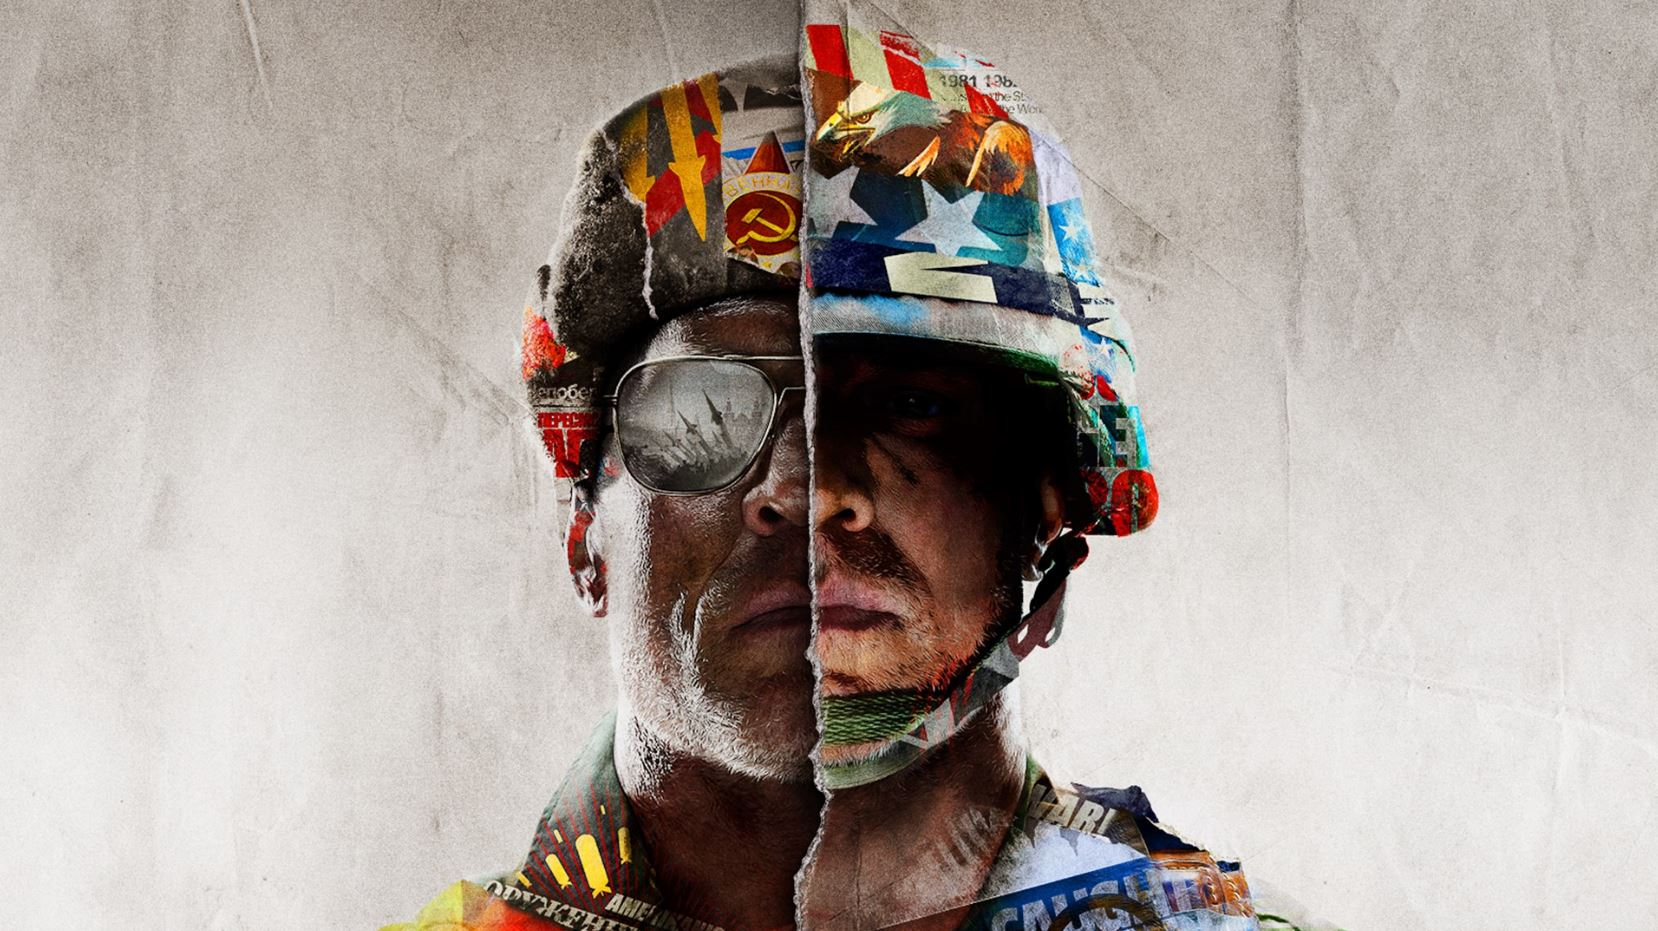 call-of-duty-black-ops-cold-war-ps5-and-ps4-trophy-list-is-lengthy-asking-you-to-play-all-3-modes